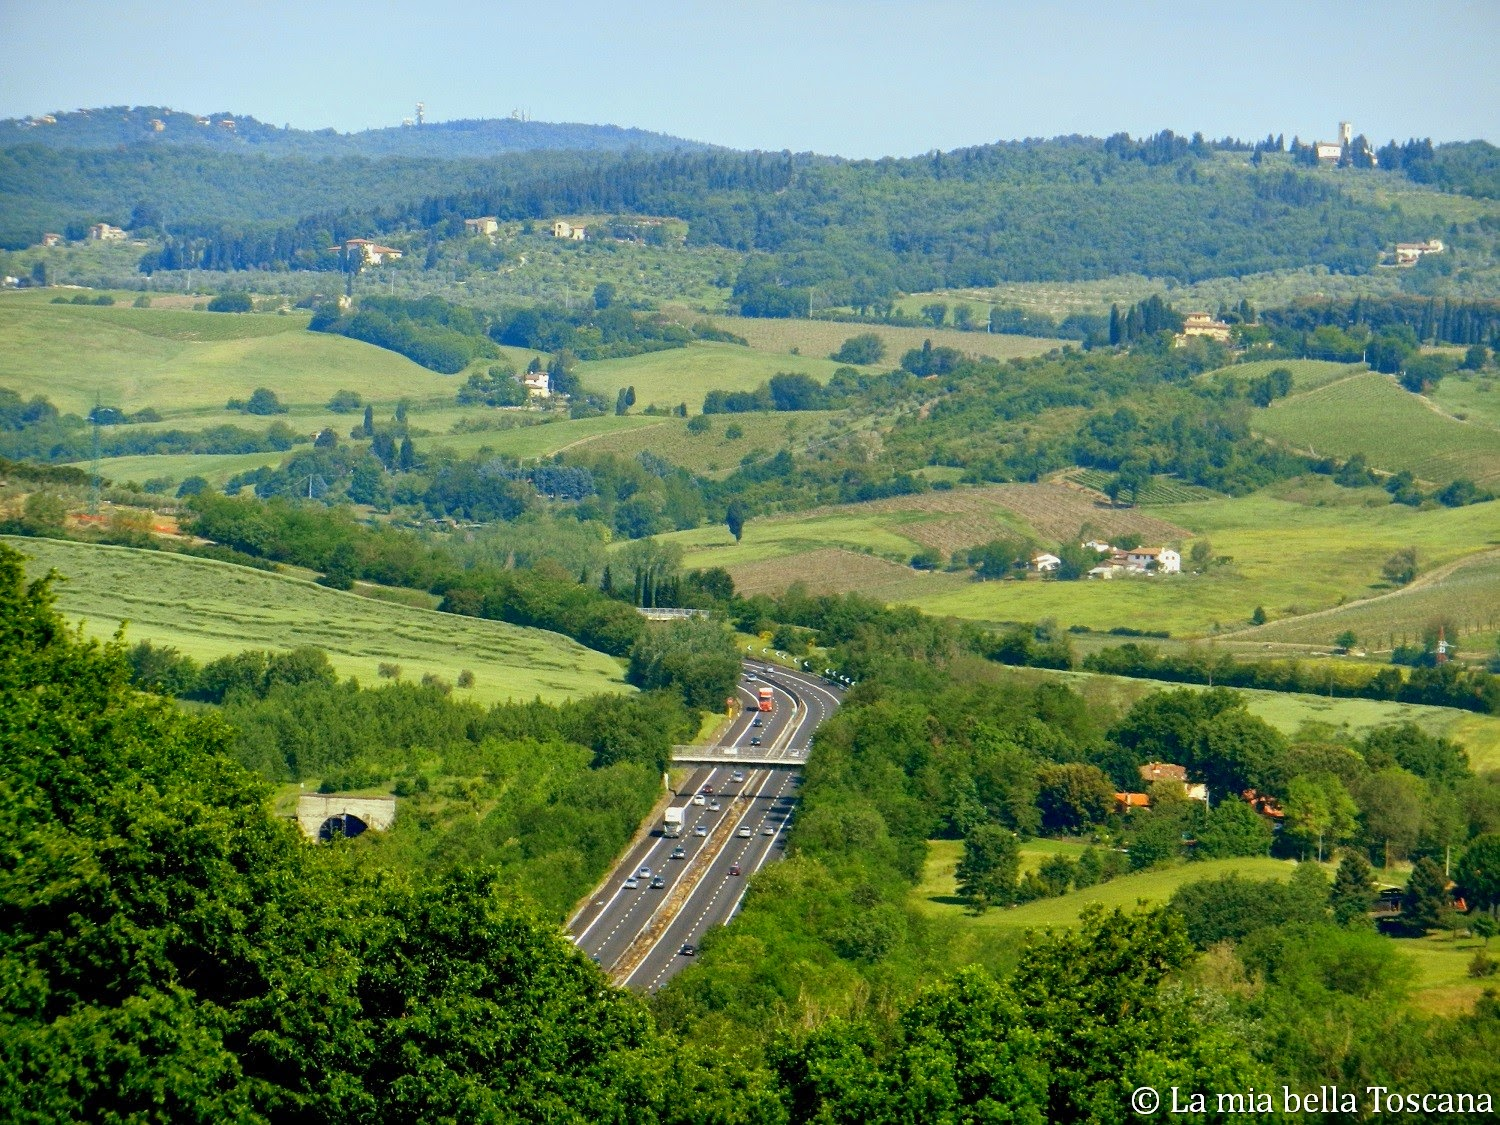 The gateway to the heart of Tuscany